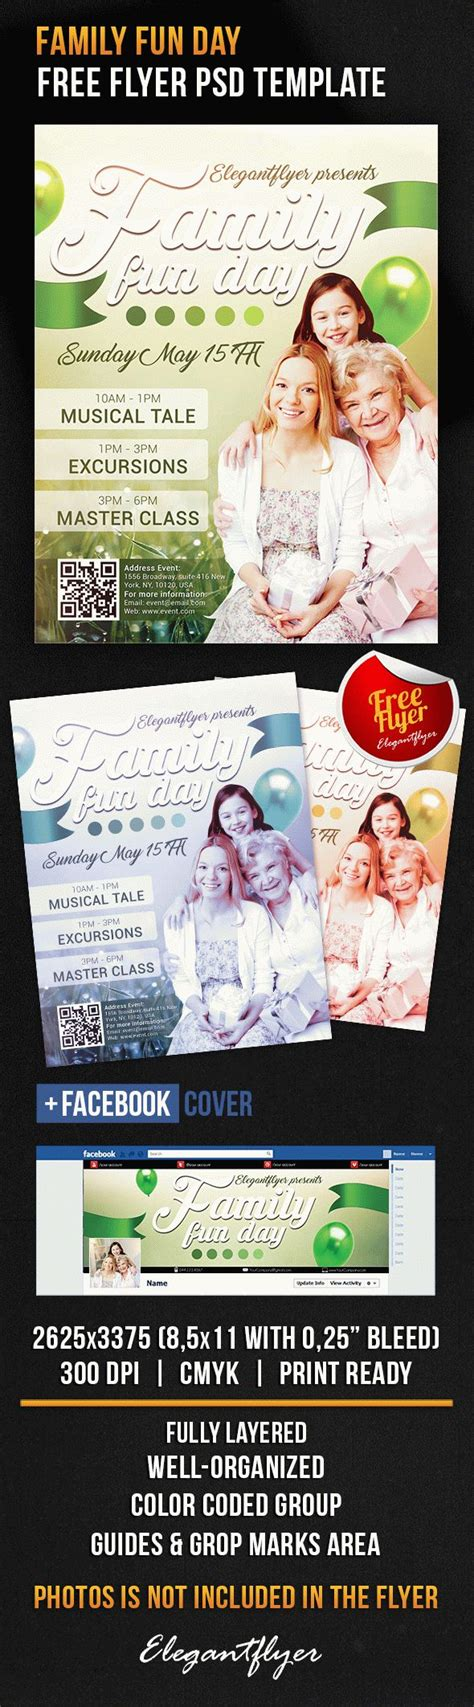 Family Fun Day Free Flyer Psd Template By Elegantflyer Day Flyer Template Free